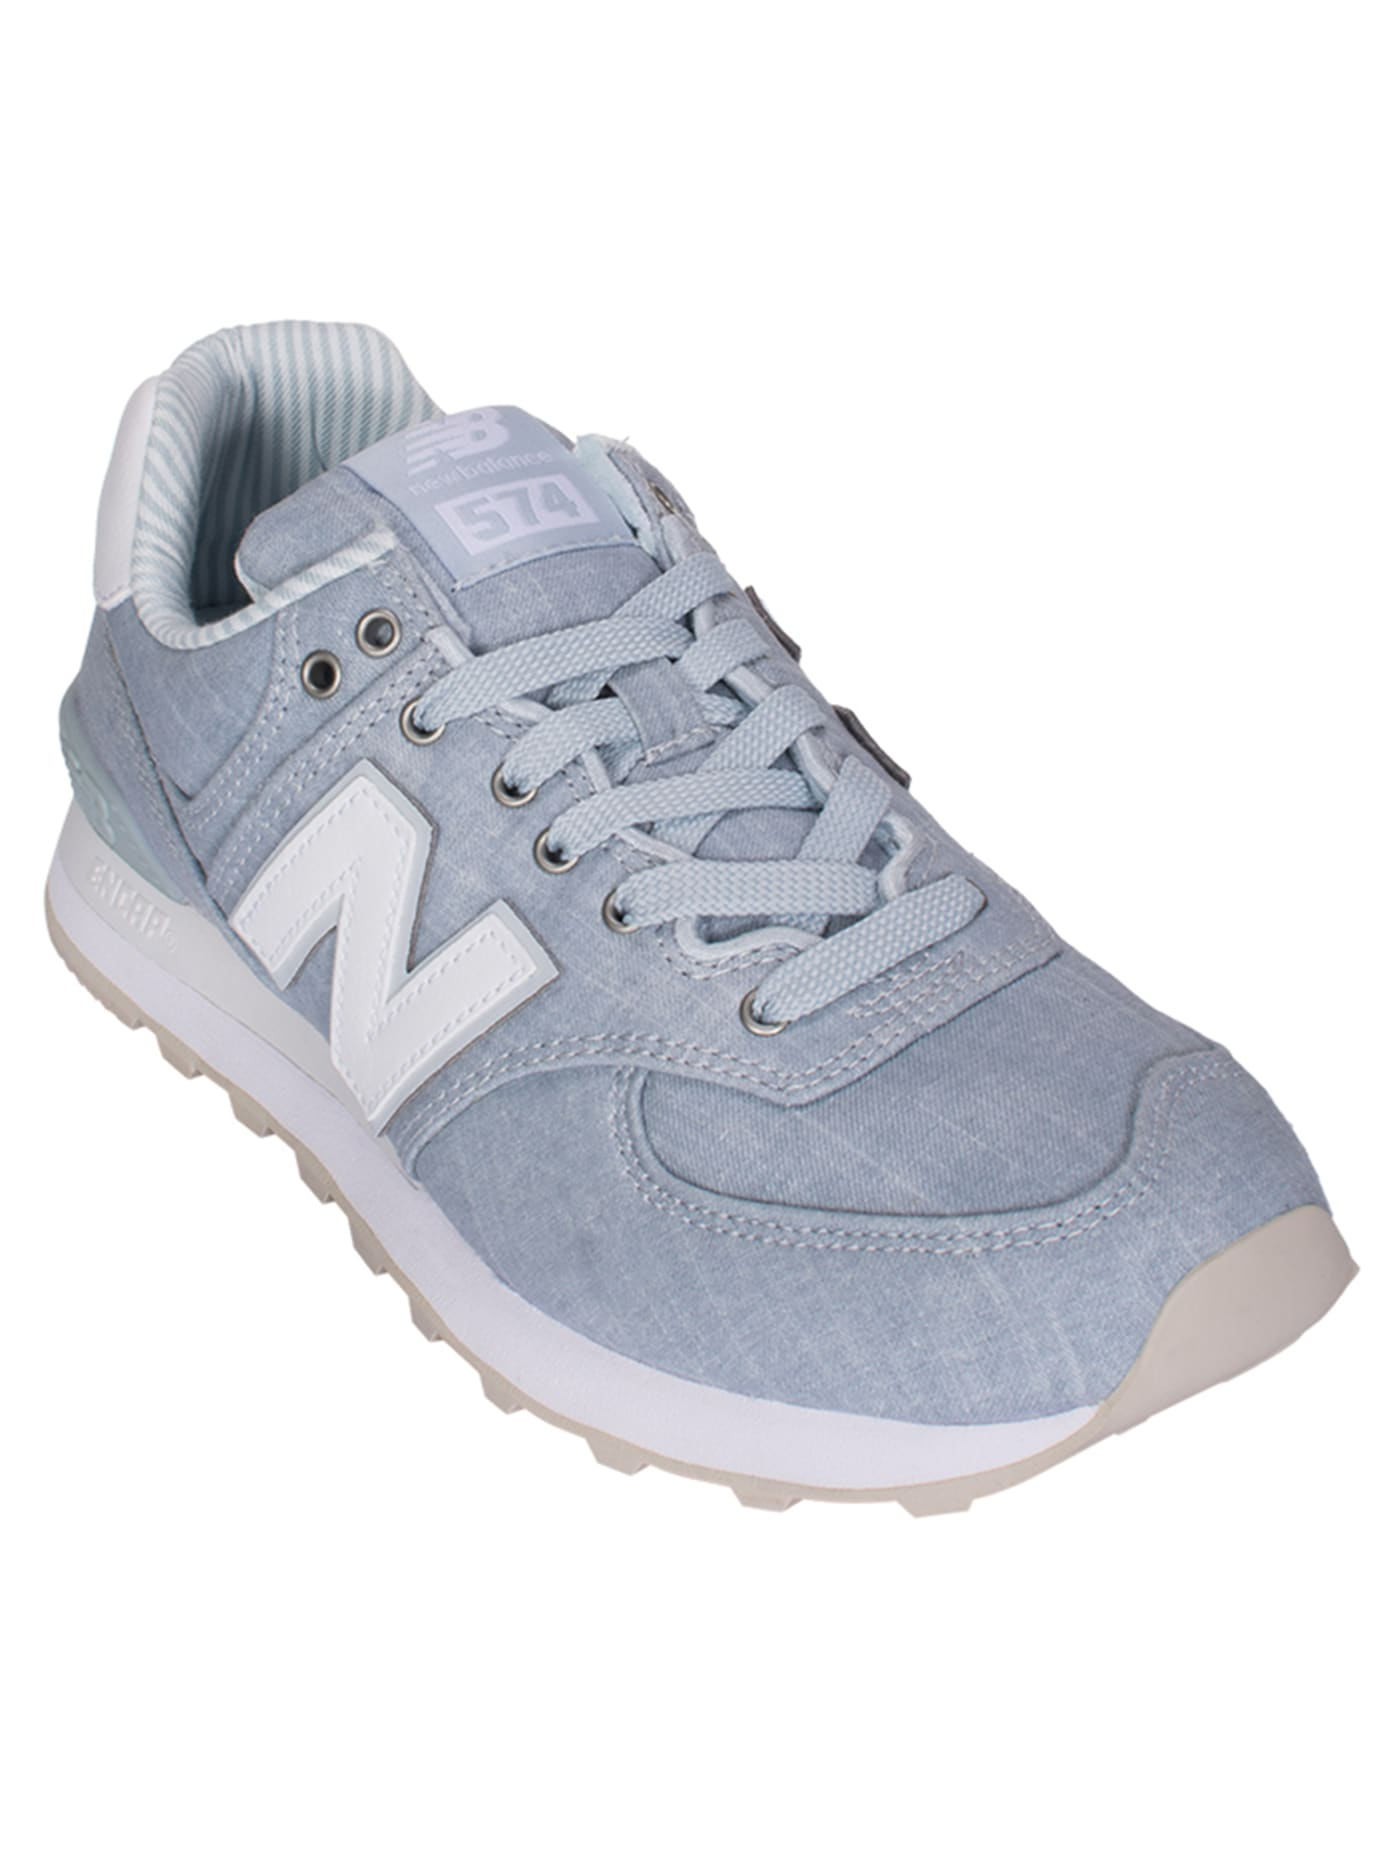 86a8da962b3 NEW BALANCE Women's Casual Shoes 574 Beach Chambray Si | Central Online